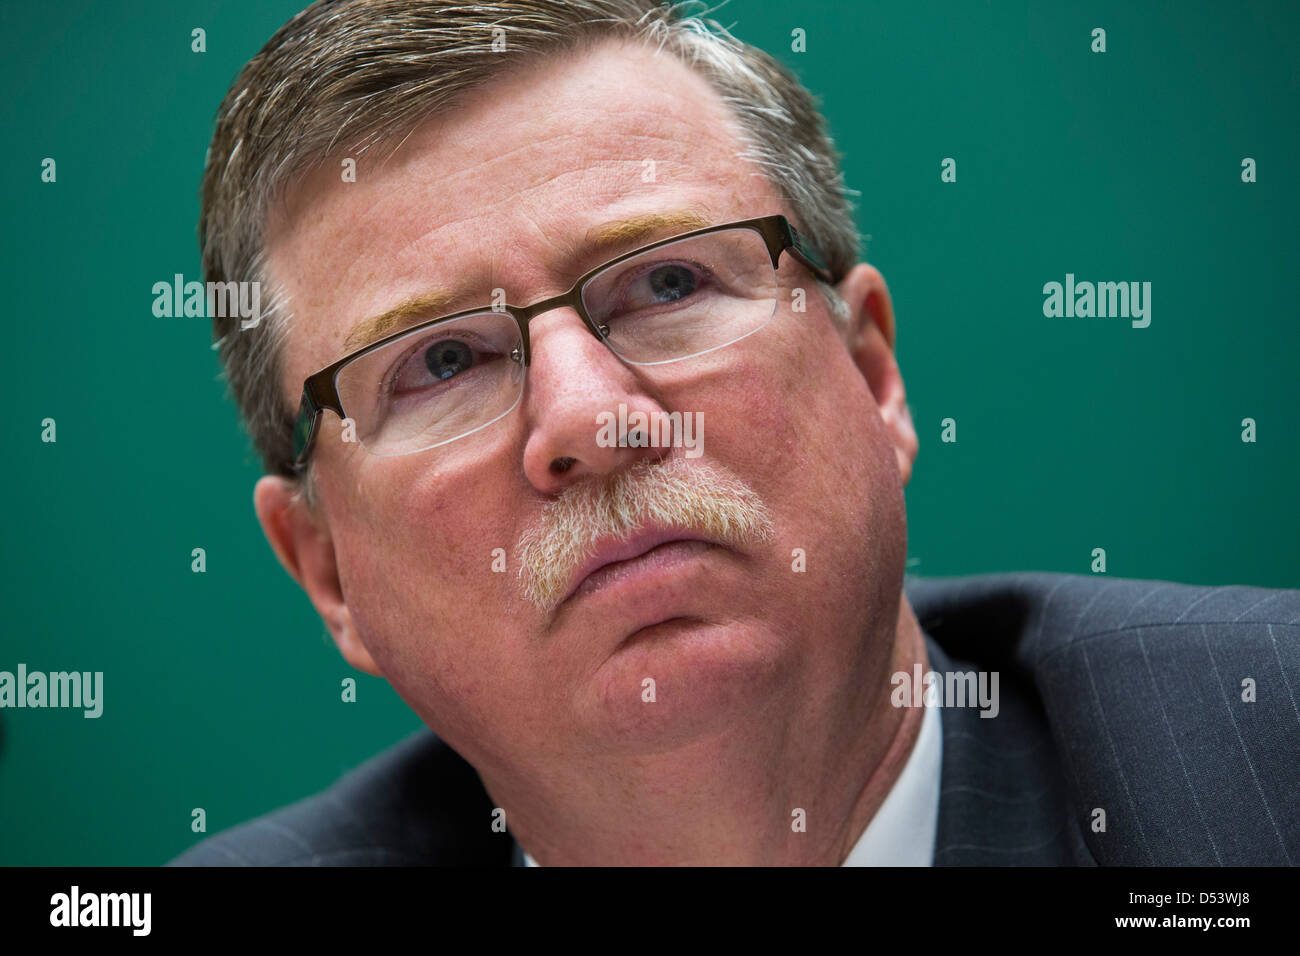 Mike Rippey, President and CEO of ArcelorMittal USA.  - Stock Image